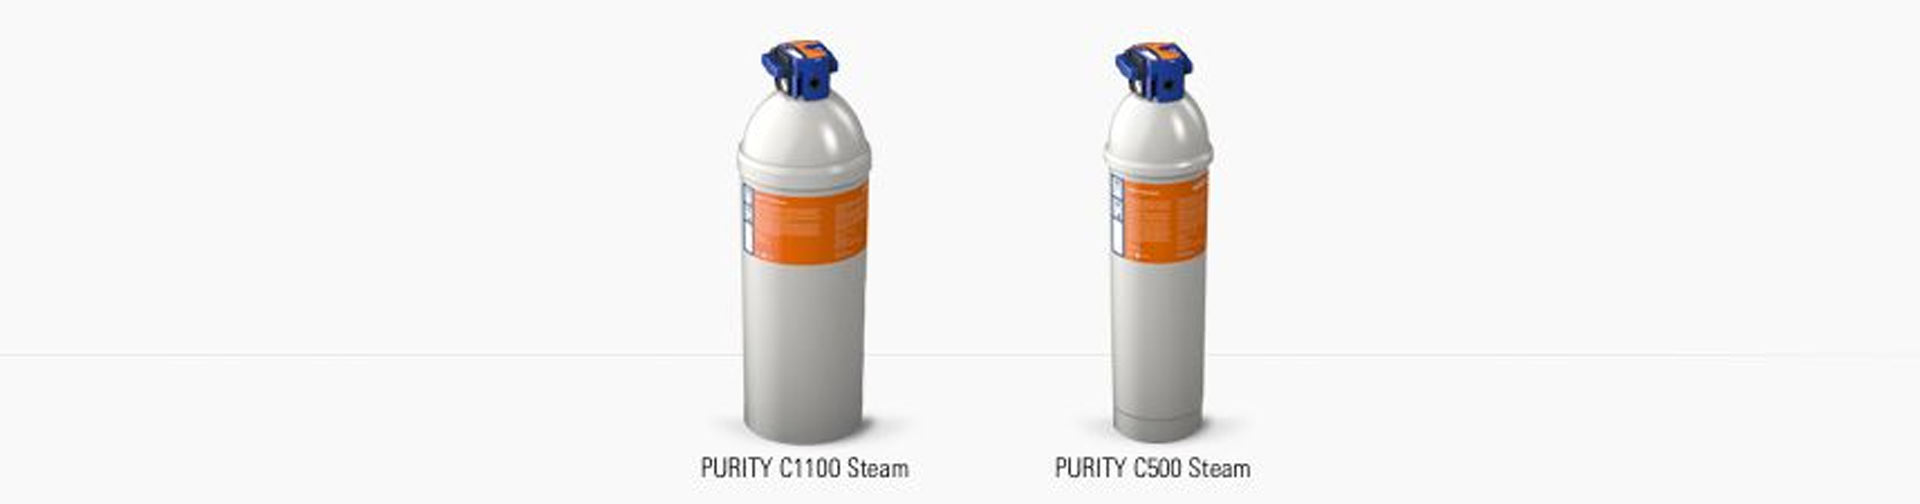 PURITY C Steam